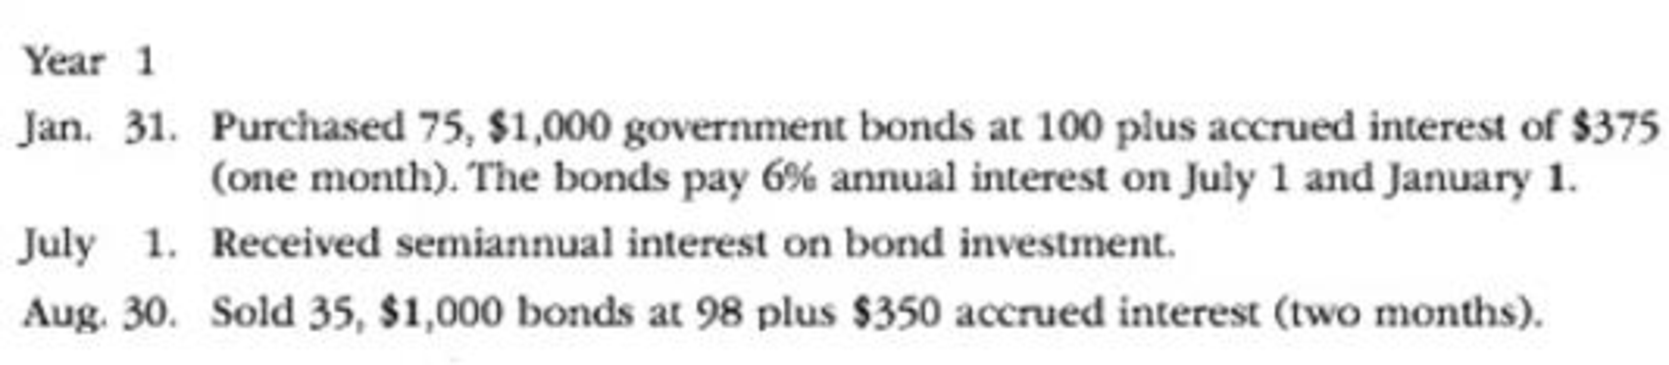 Chapter 15, Problem 4E, The following bond investment transactions were completed during a recent year by Starks Company: